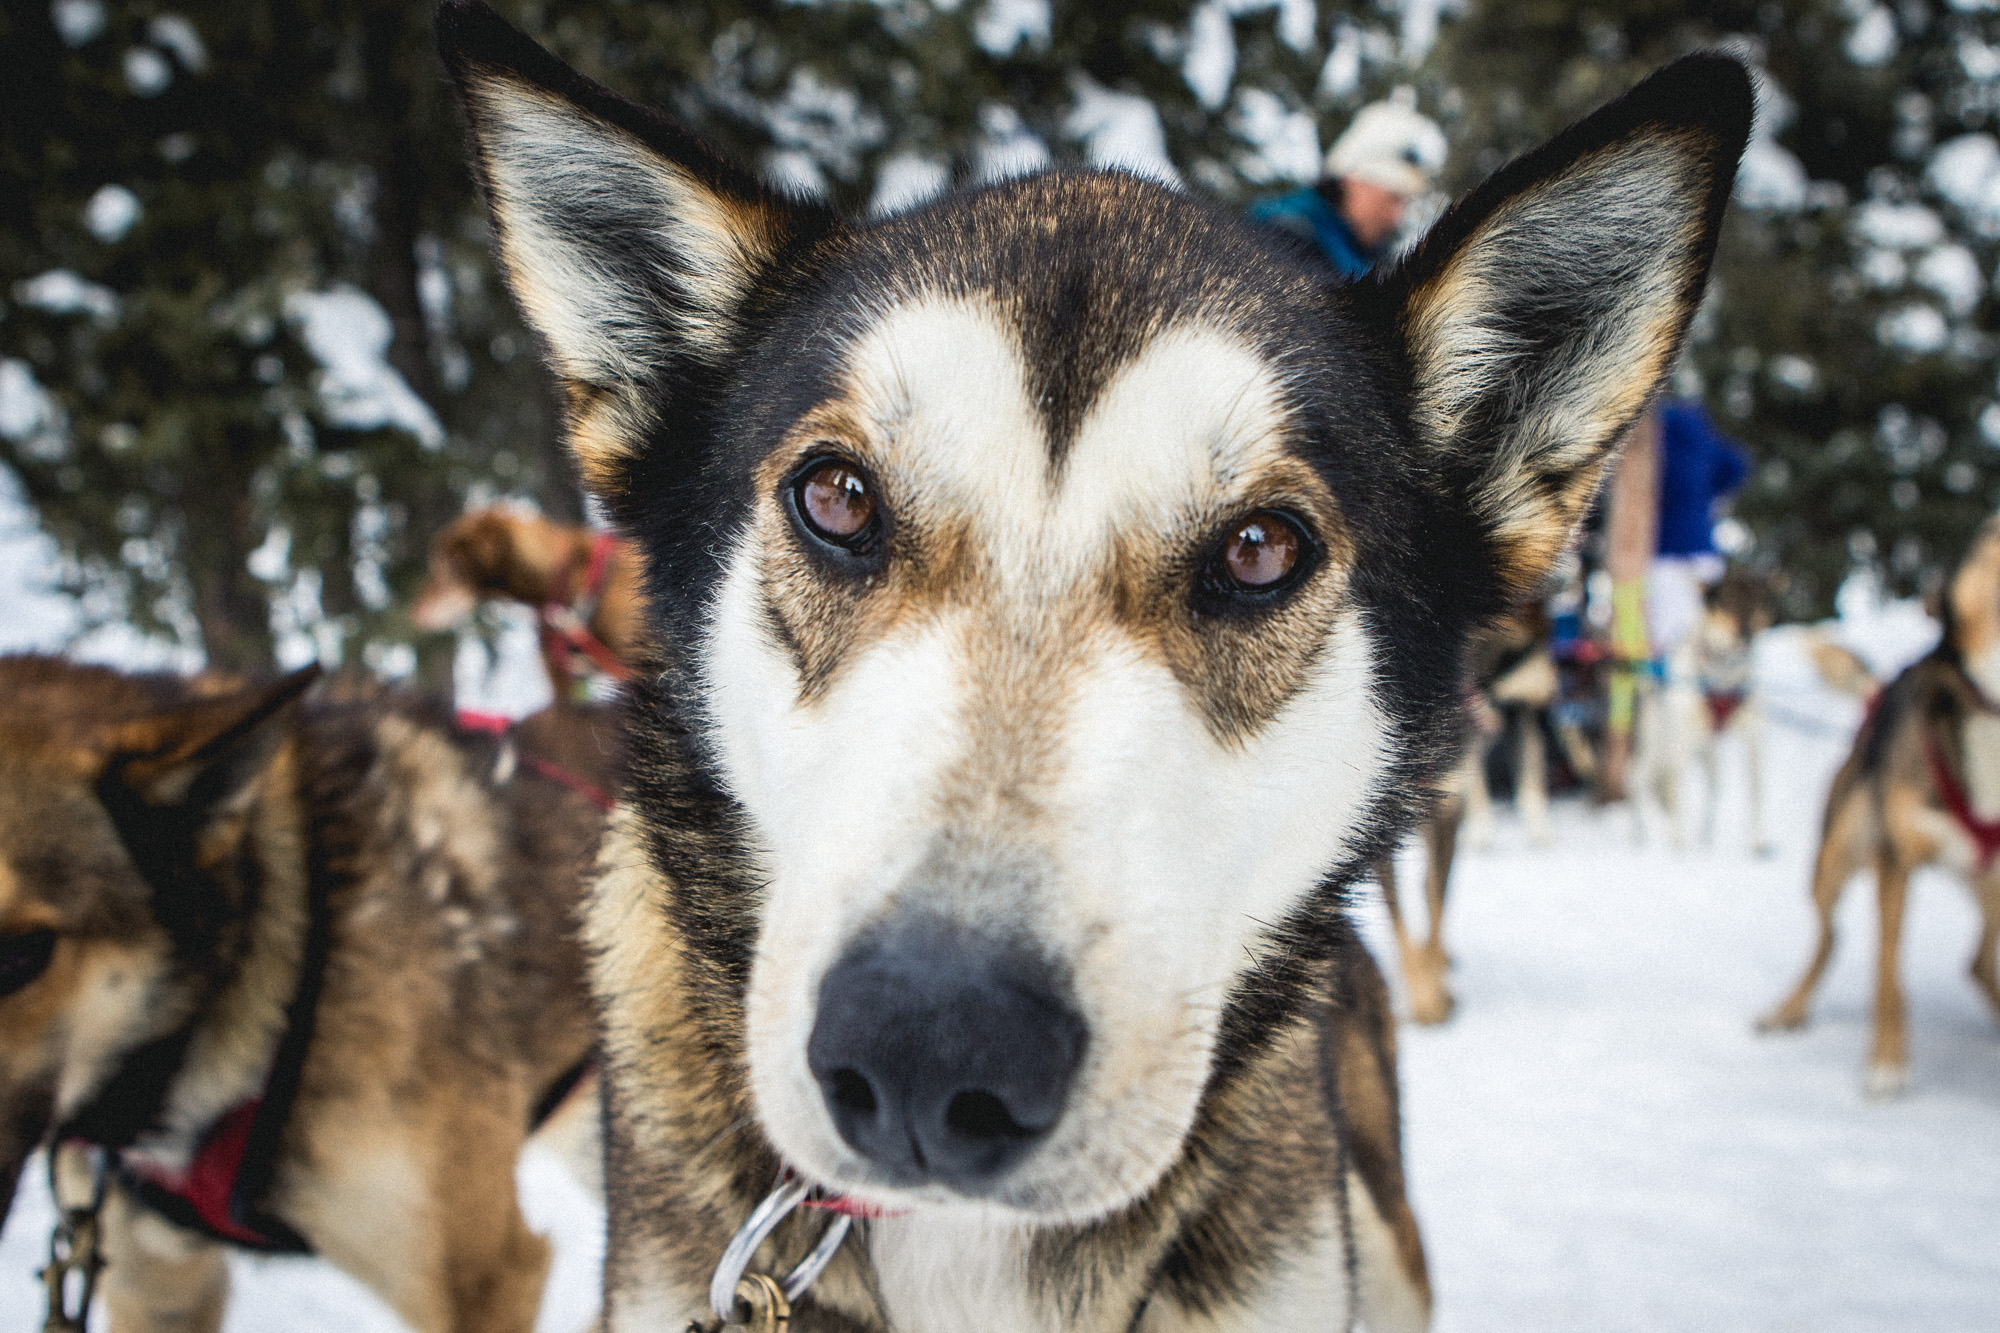 close up of Wyoming sled dog's face